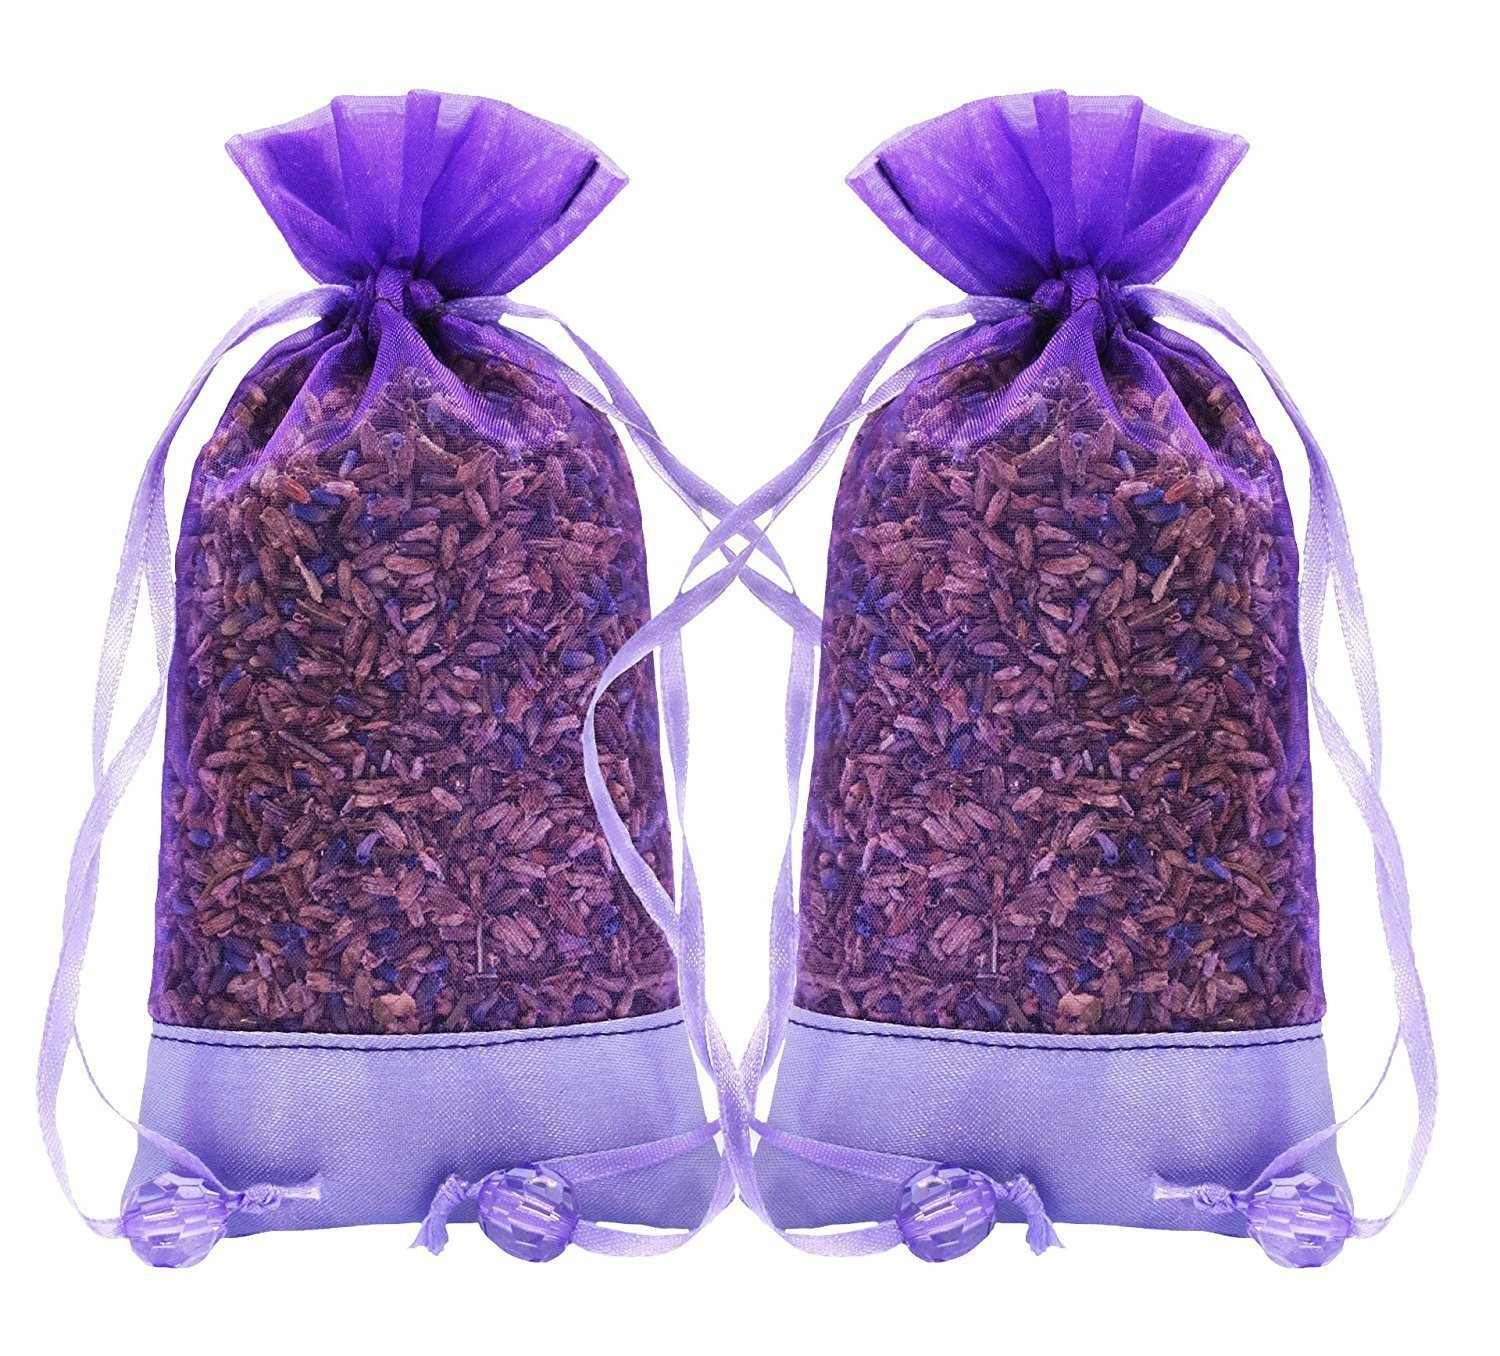 Lavender Natural Air Freshener for Closet, Drawer, Car, Room - 2 Packs of 30 Grams Cozy Pouch Sachets Filled with Dried French Lavender Buds The Ambient Collection AC01011